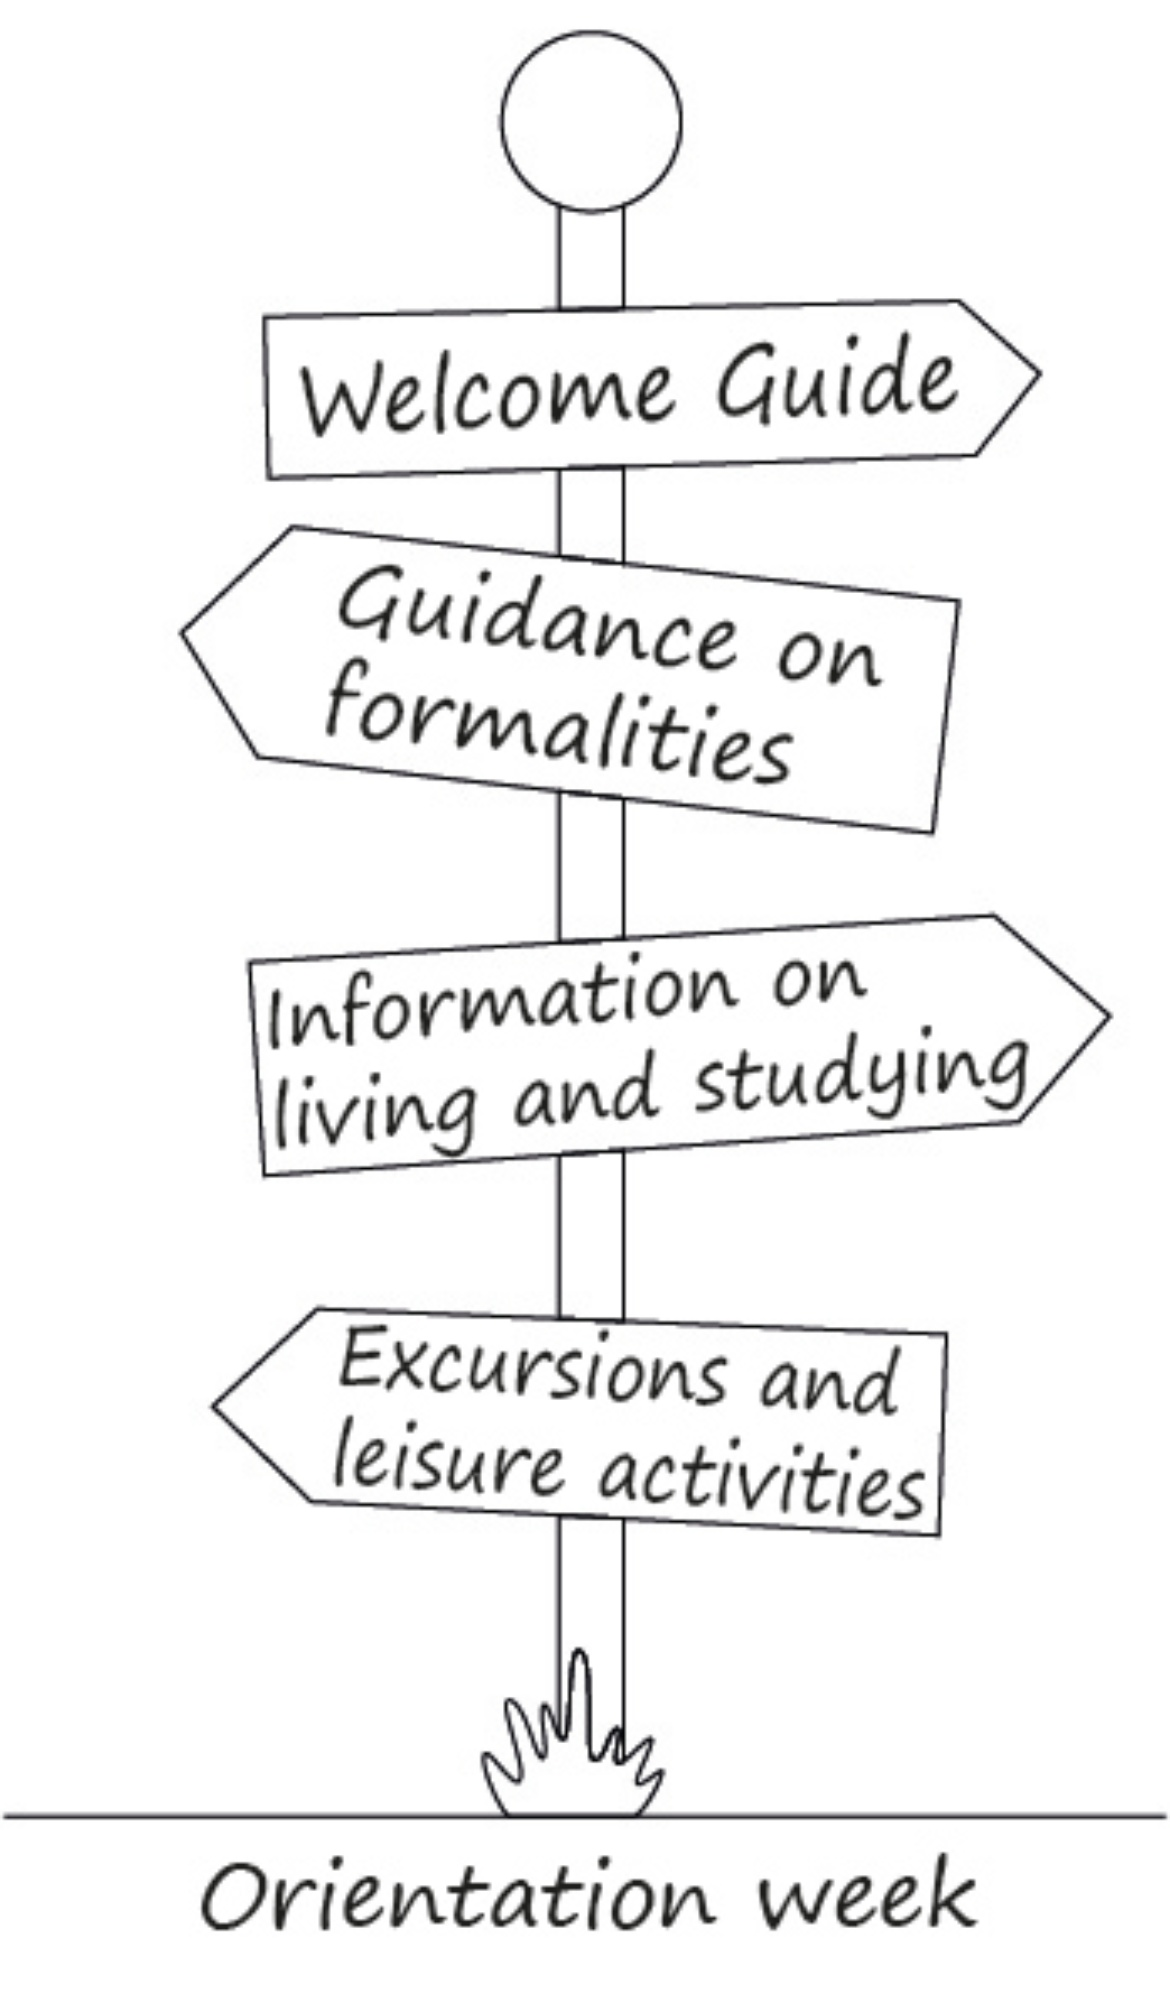 Offered events: welcome guide, guidance on formalities, information on living and studying, excursions and leisure activities